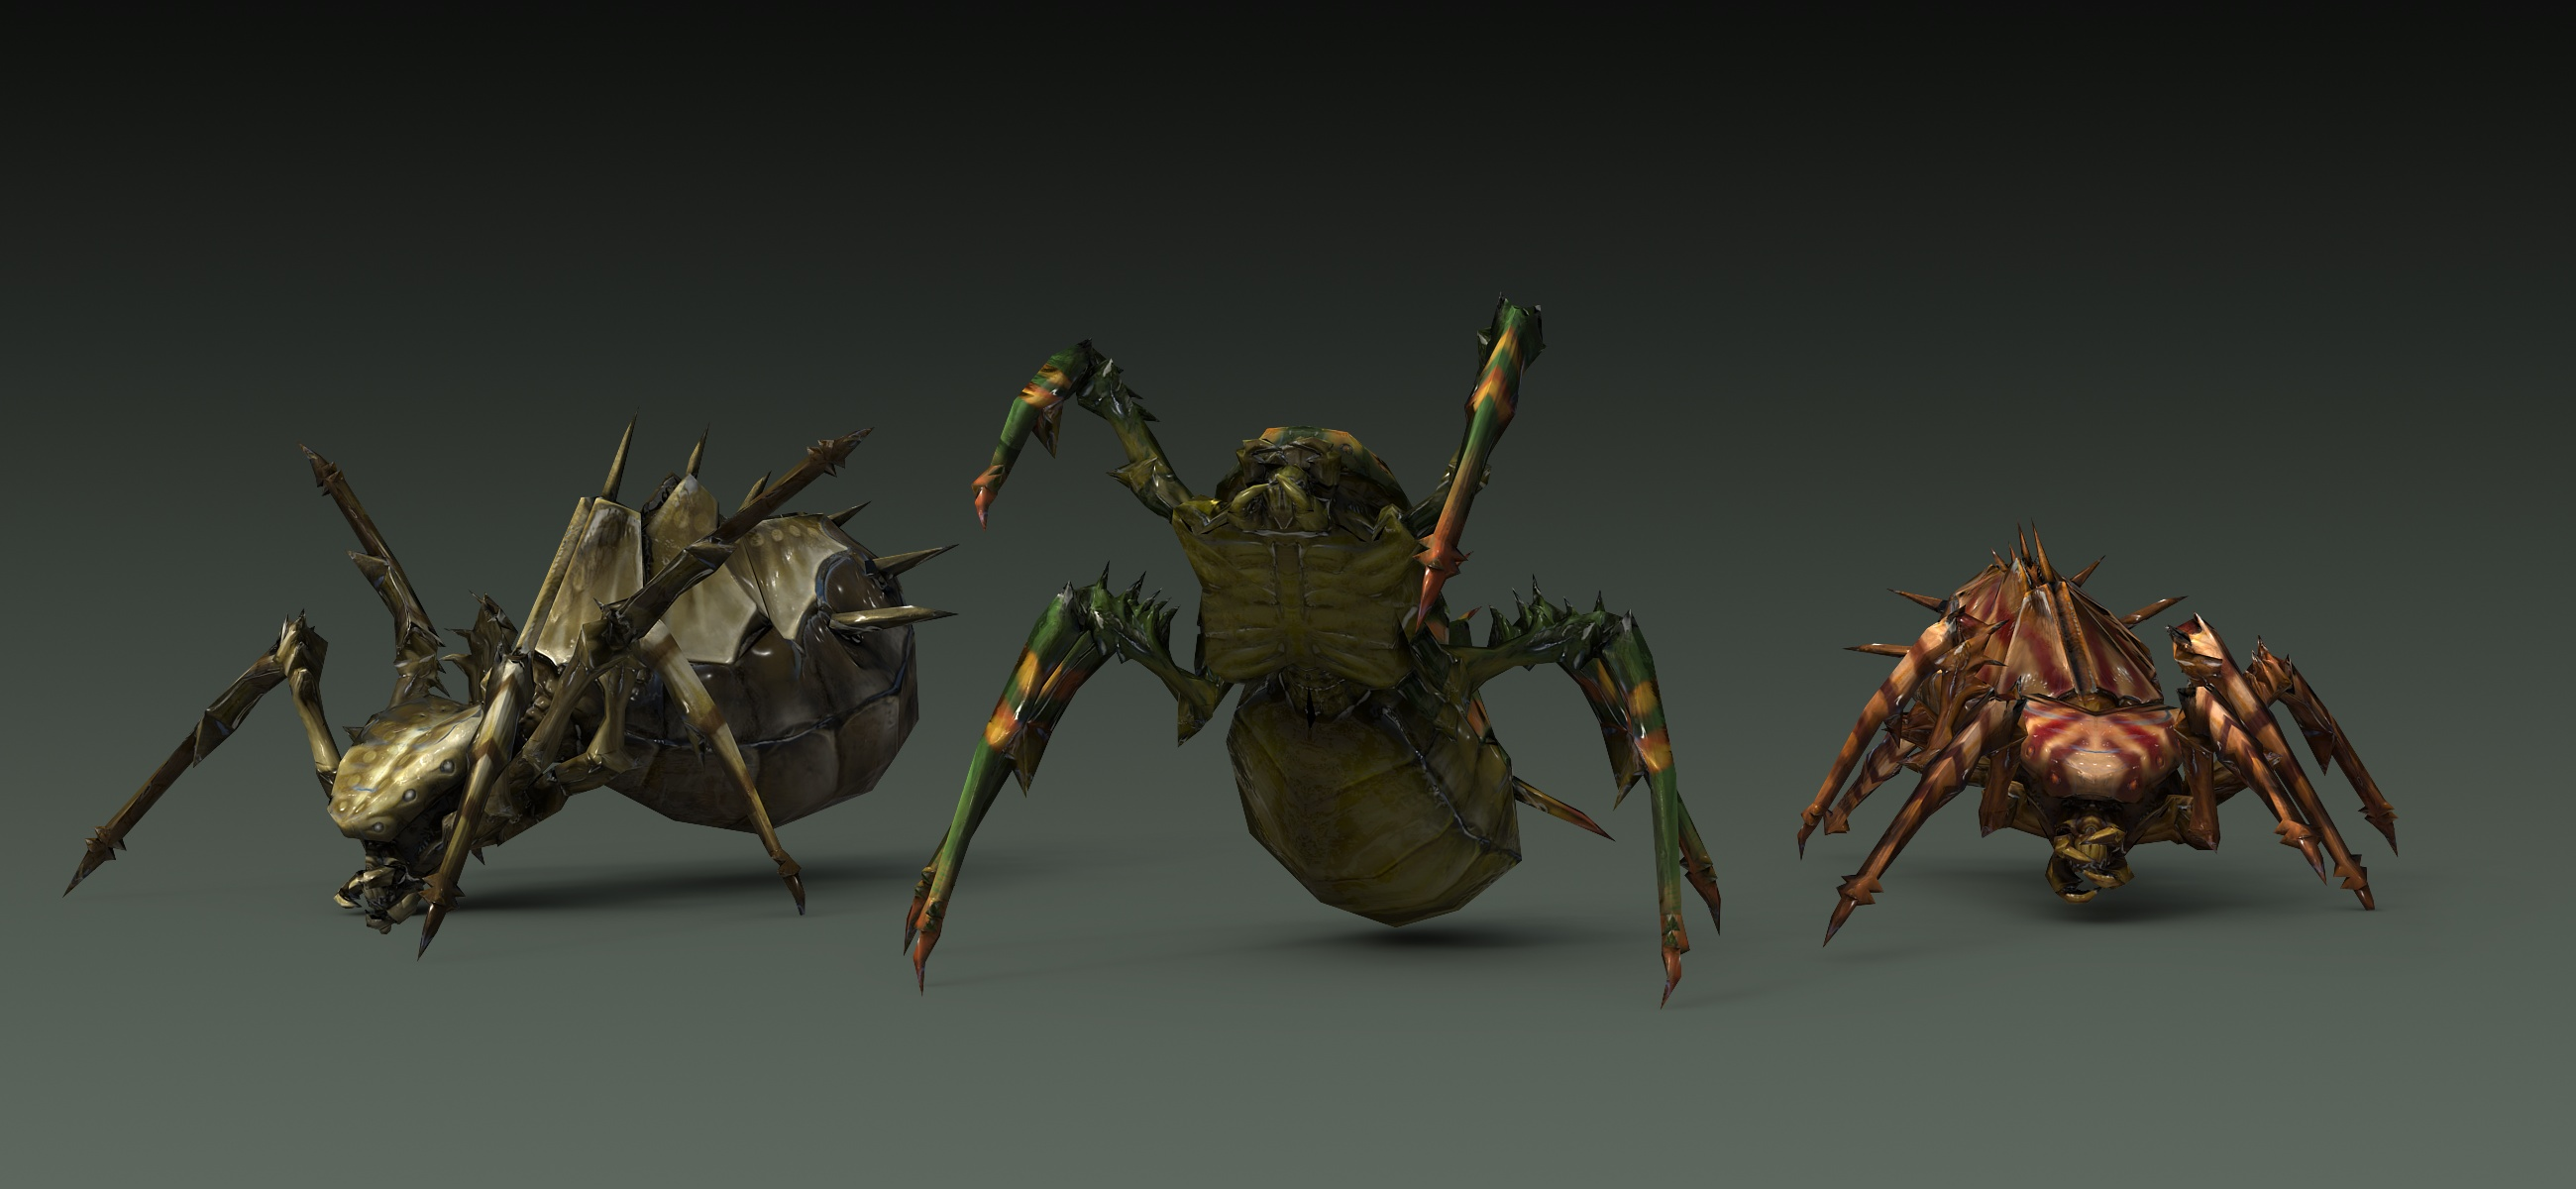 Spiders Rendering 2